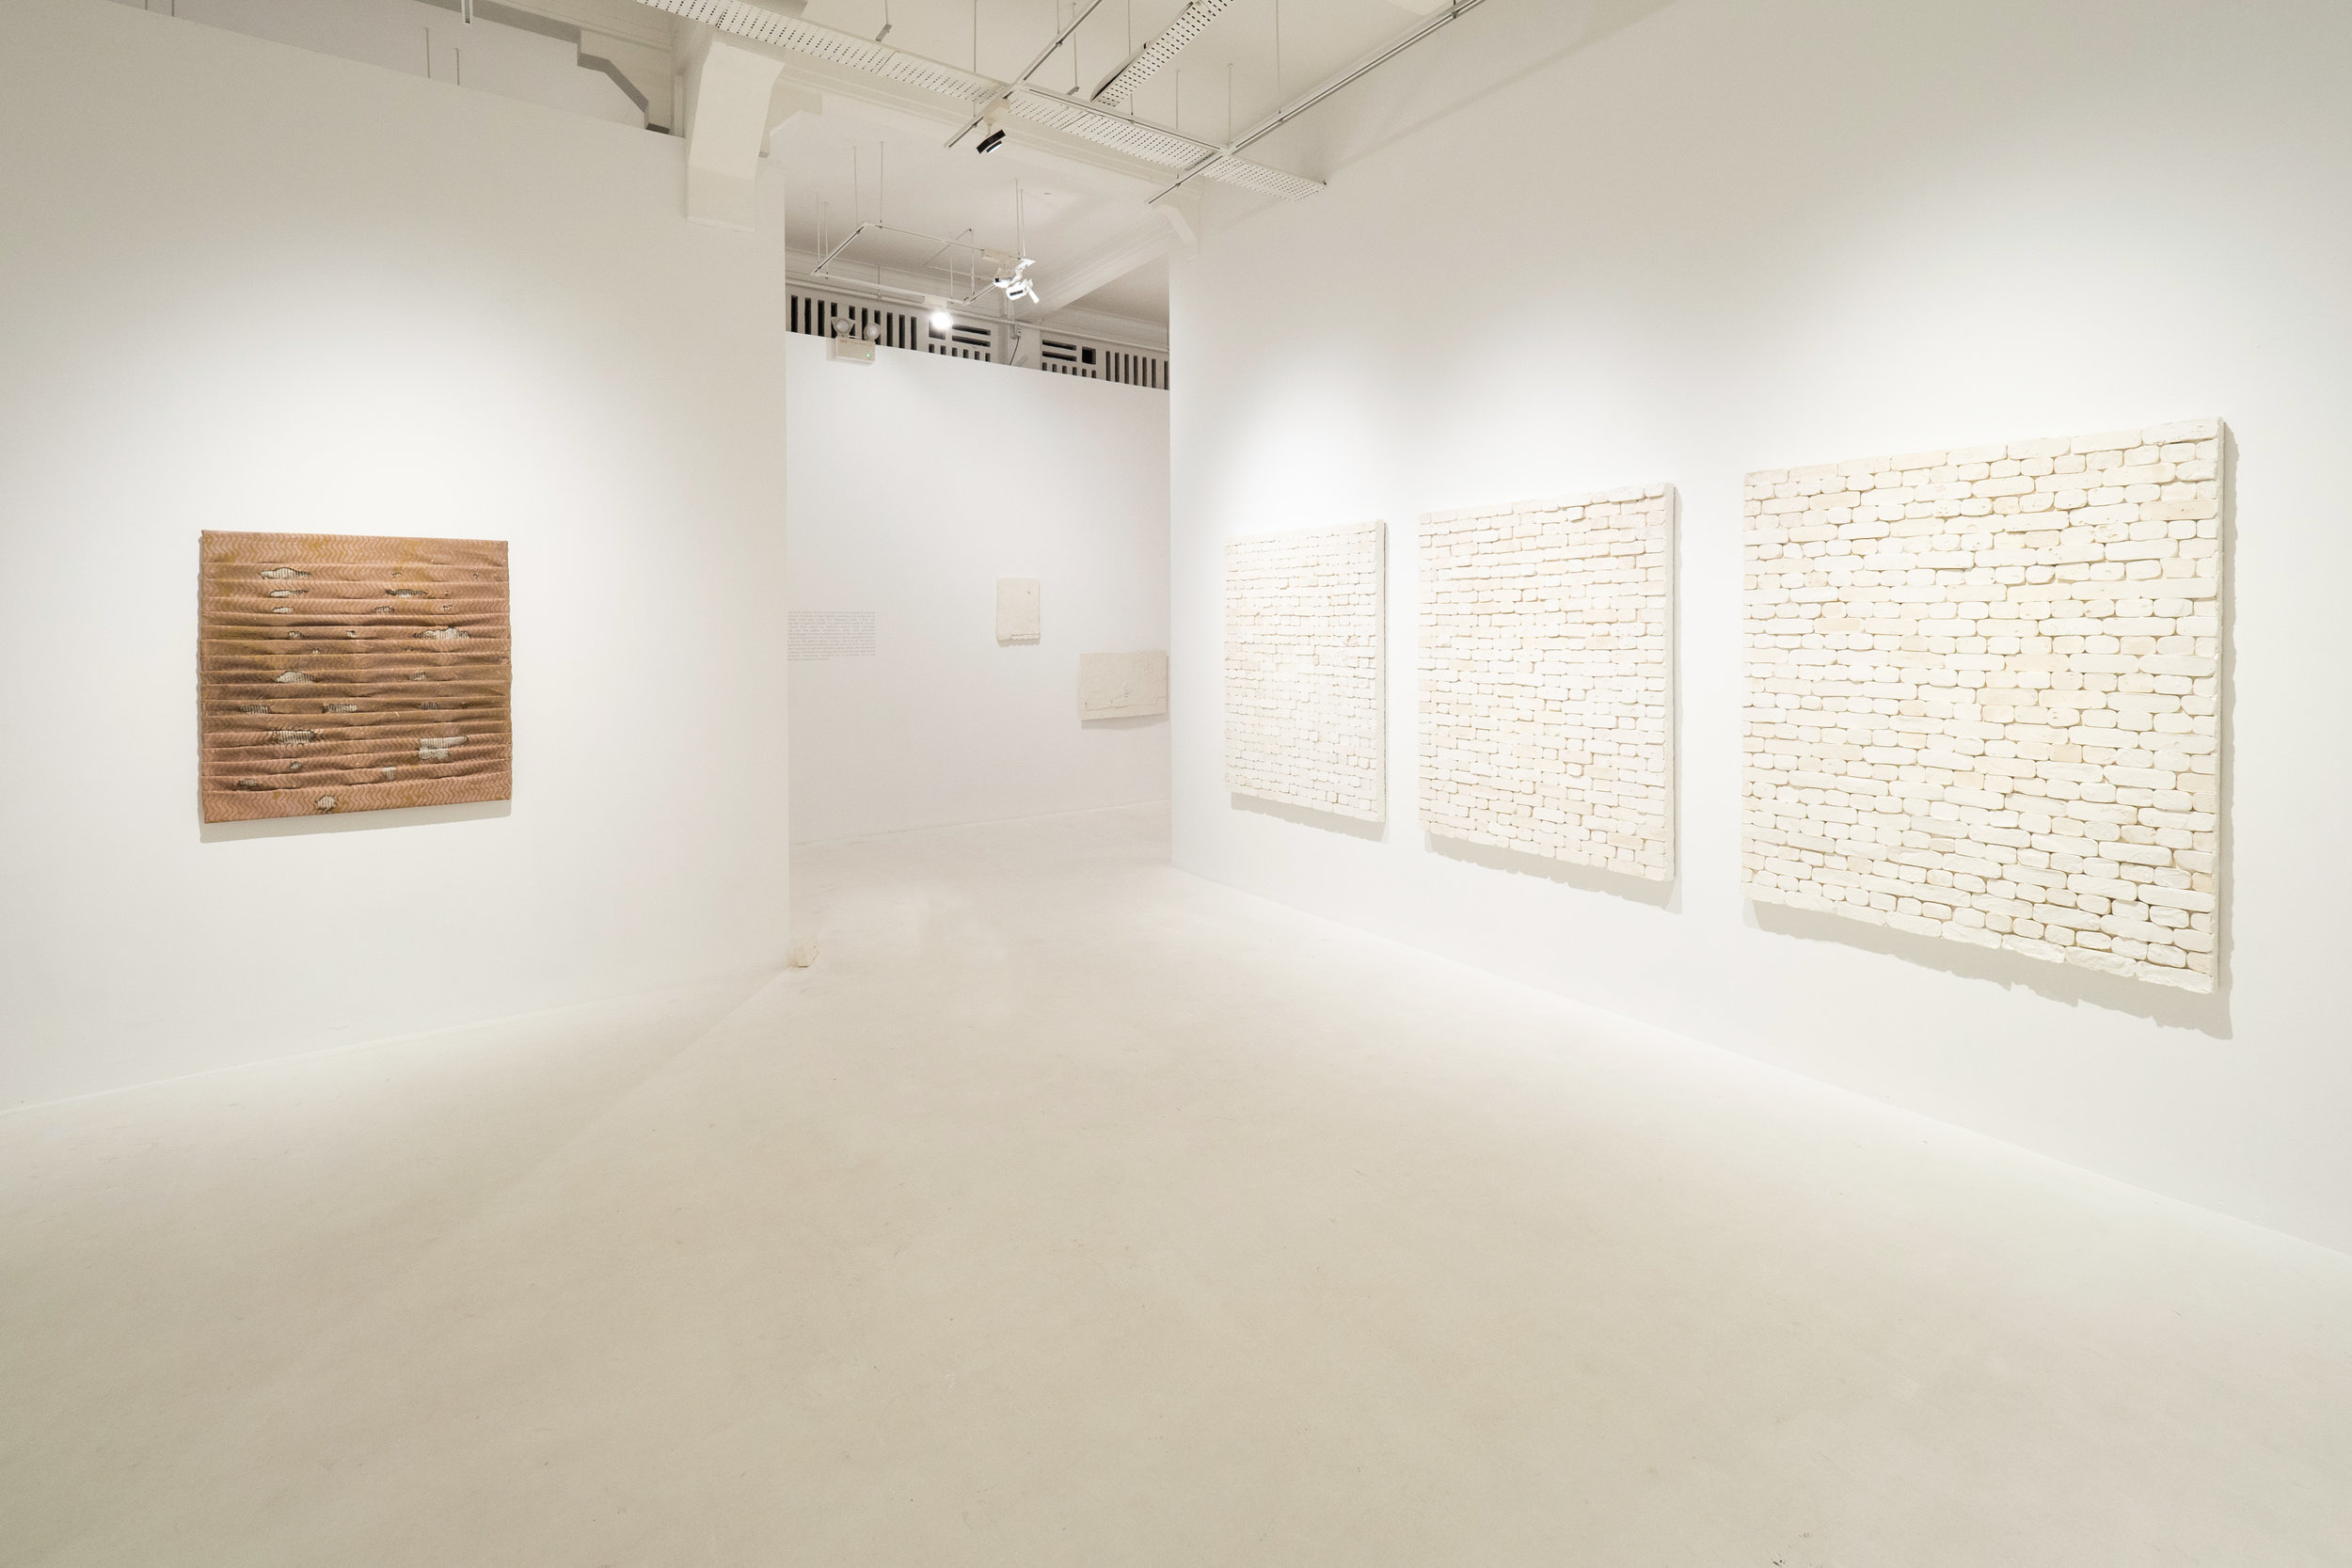 Installation View of 'ECB' 'FB' 'EB' 'Aspect' 'Shoot Blood' by Ben Loong and 'Kesan (No.2)' by Zulkifli Lee.jpg